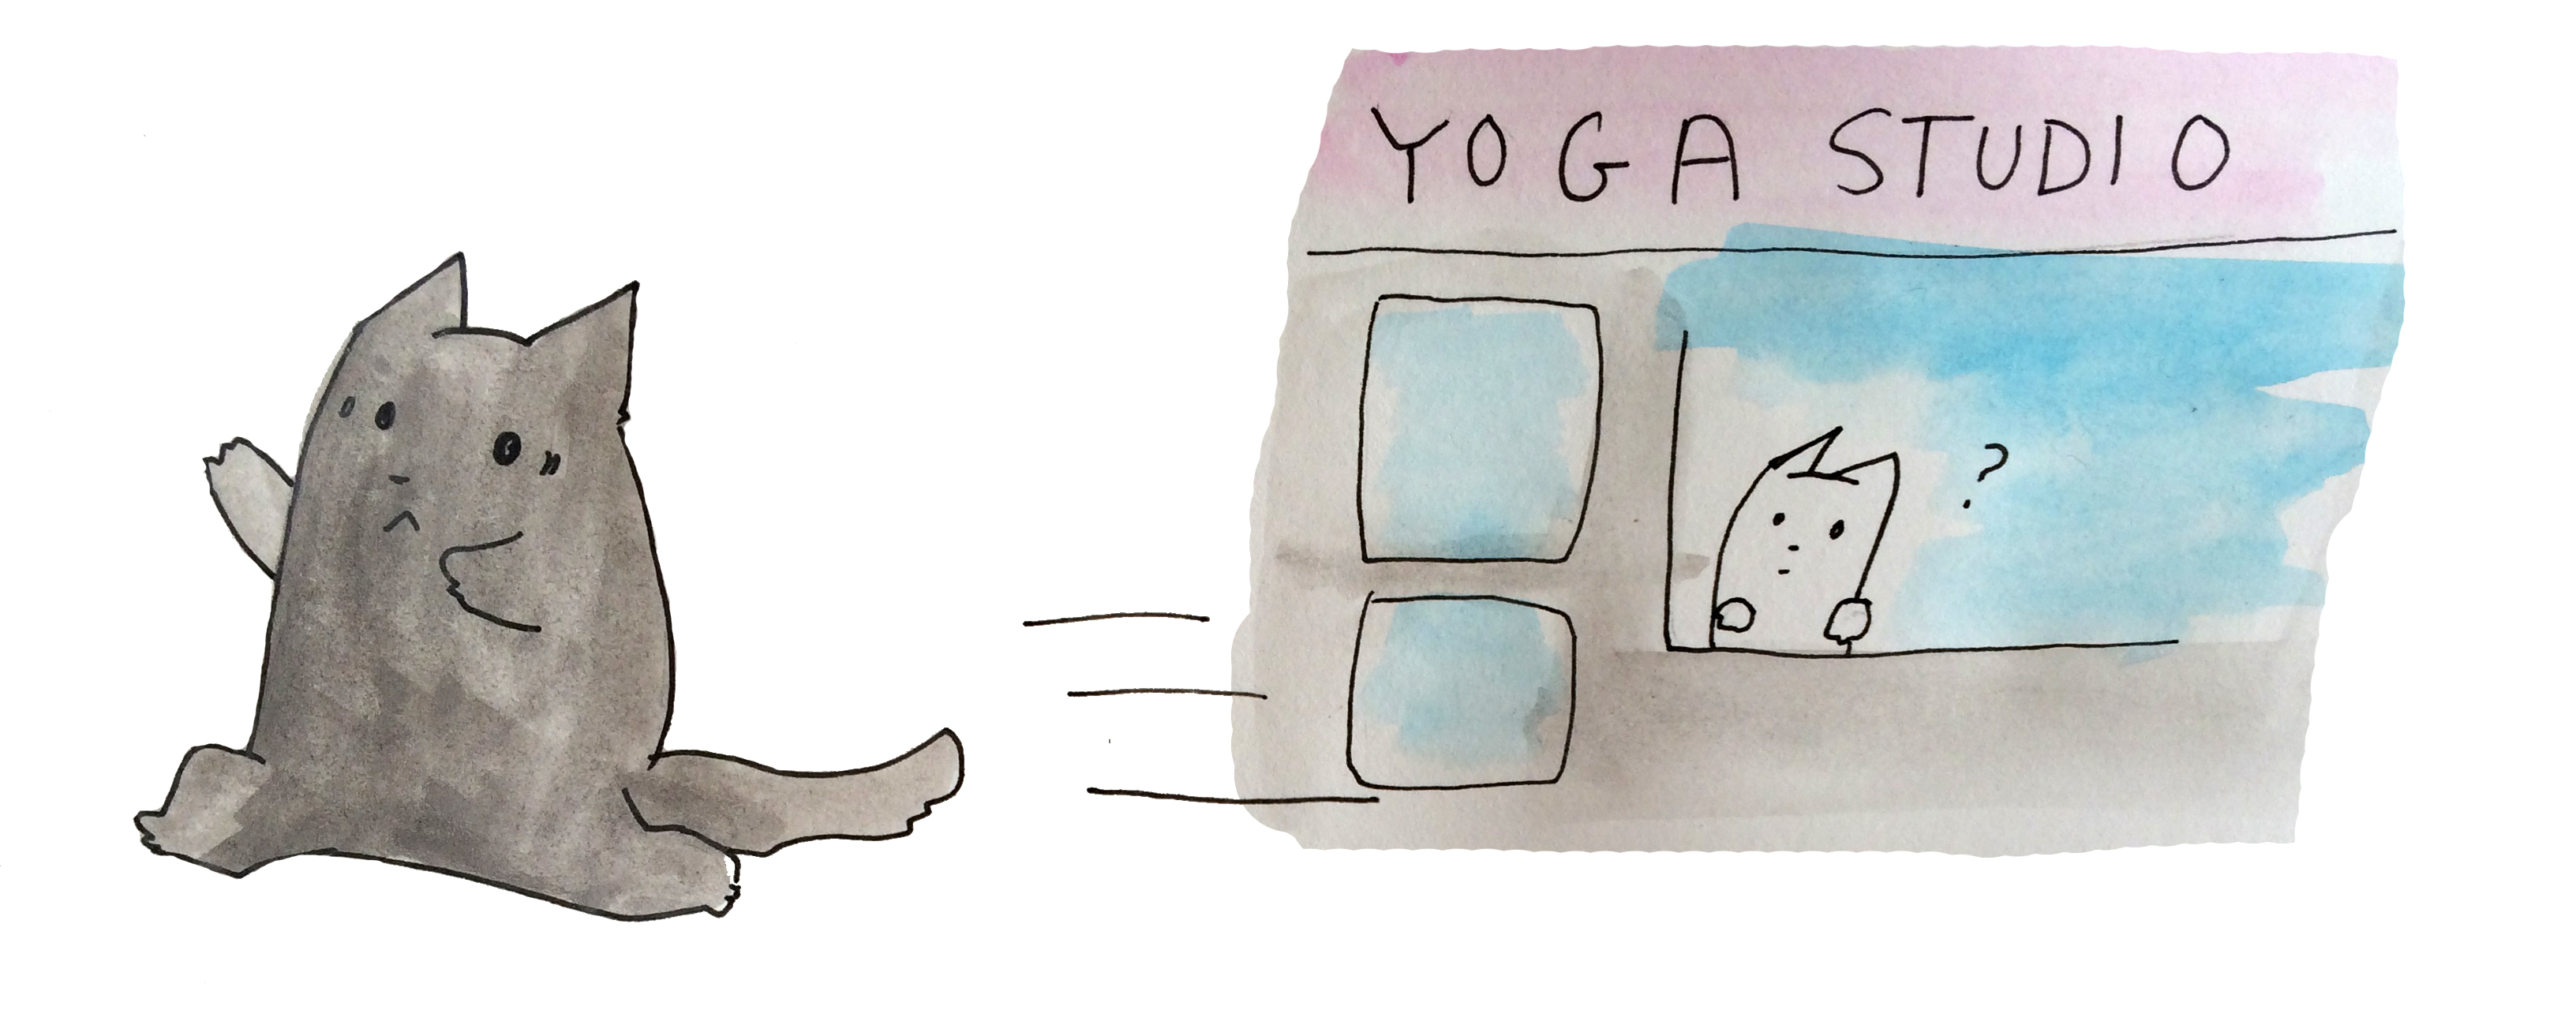 Yoga Cat Runs from Yoga Studio